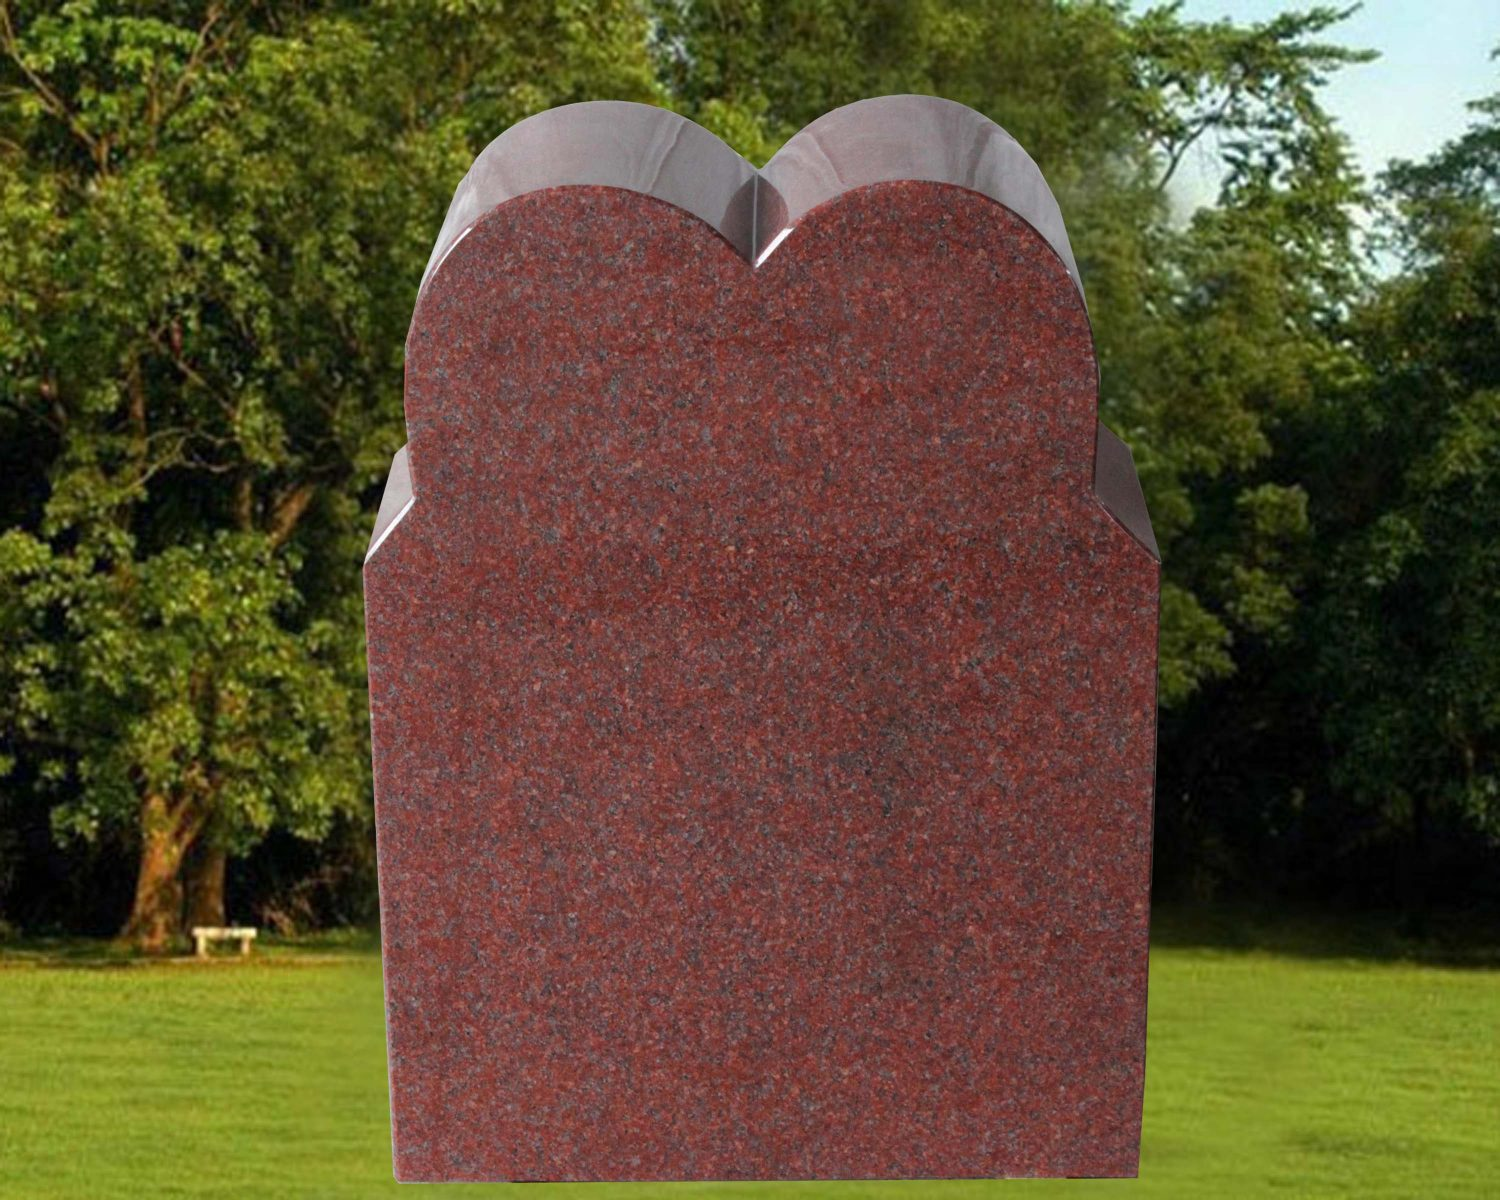 EG-15-245-421 / India Red / Single Heart on Top Memorial